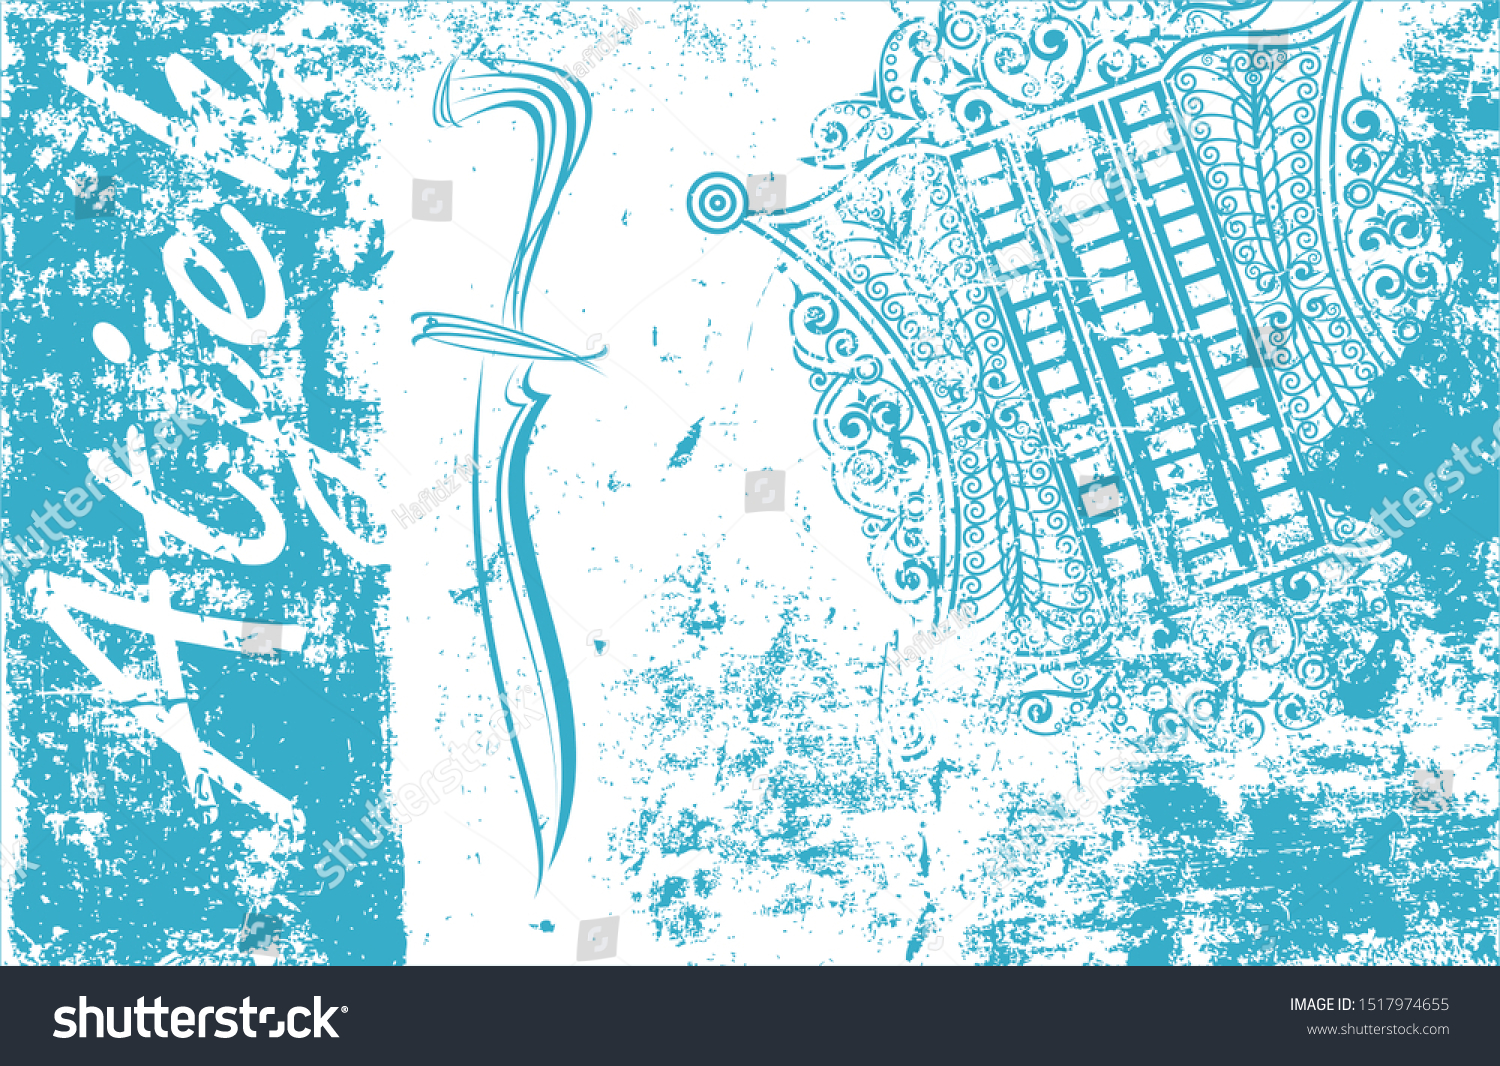 aceh grunge wallpaper blue rencong pinto stock illustration 1517974655 https www shutterstock com image illustration aceh grunge wallpaper blue rencong pinto 1517974655